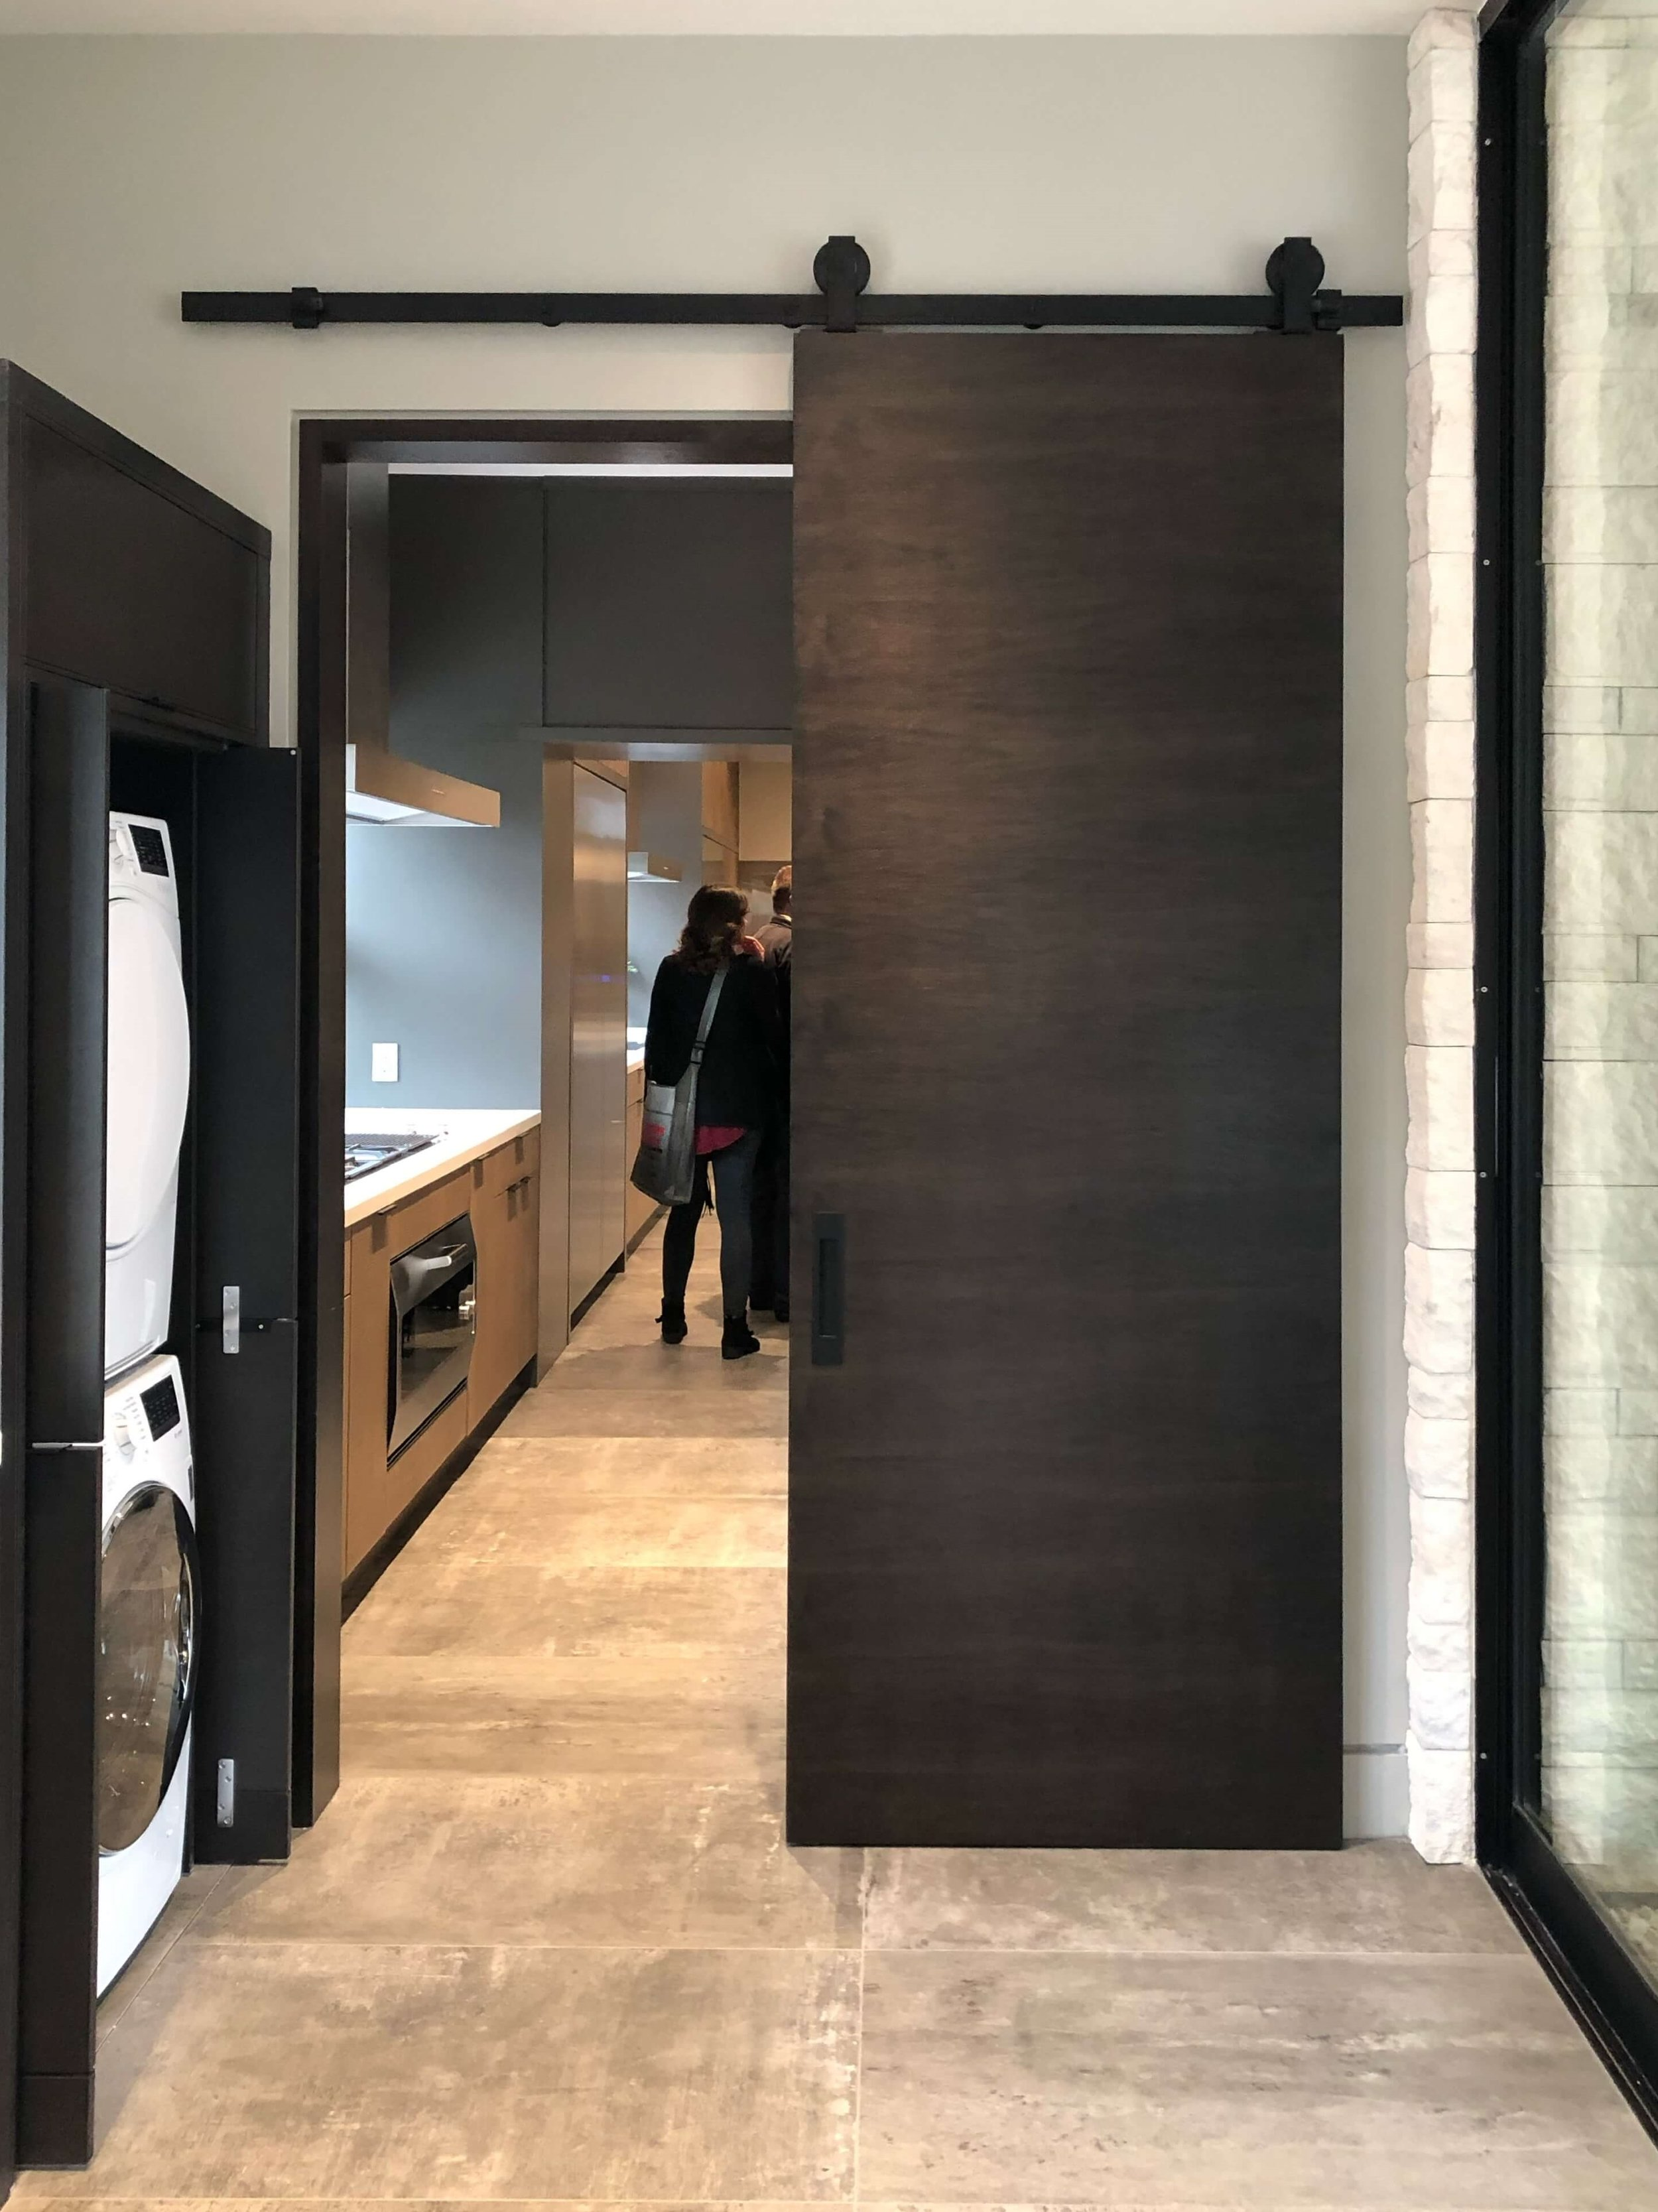 Contemporary tall wood barn door closes off the laundry room when needed in The New American Remodel 2019. #hometour #contemporaryhome #laundryroom #barndoor